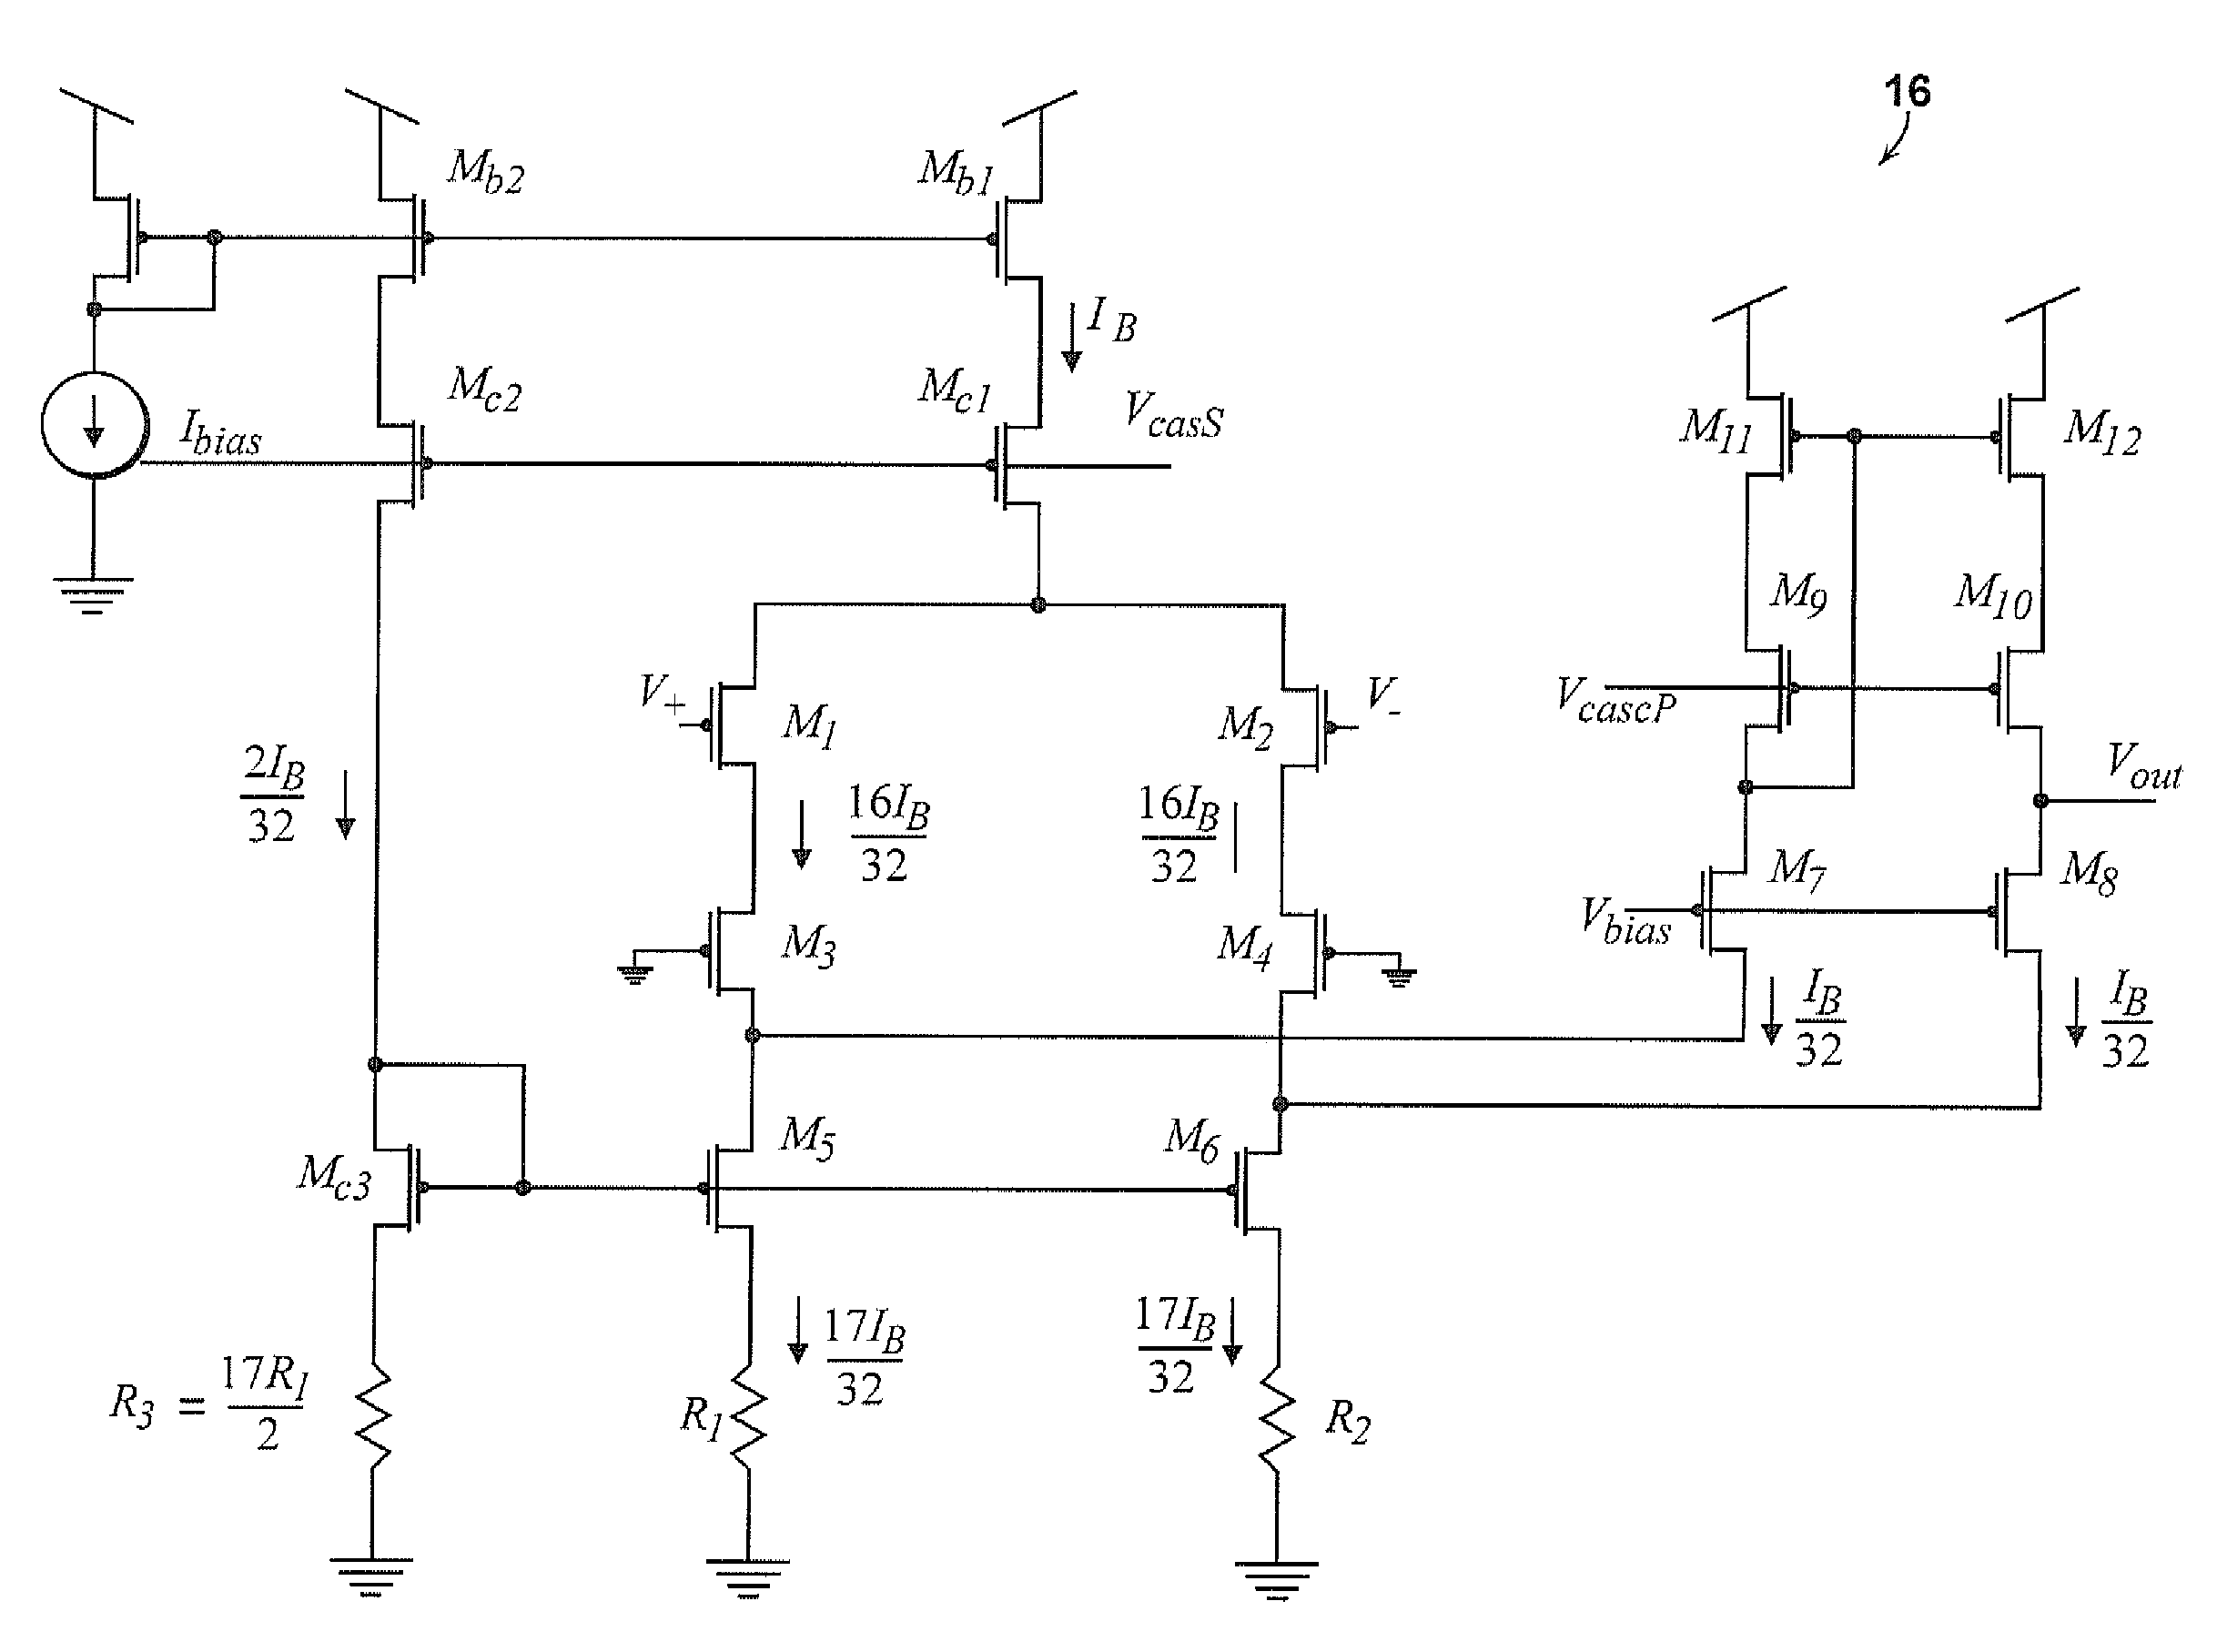 Analytics For Us Patent No 8200325 Micropower Neural Amplifier Below Is A Transistor Circuit Which We Will Find The Midband Gain Includes Low Noise Stage Implemented Using An And Pseudoresistor Elements